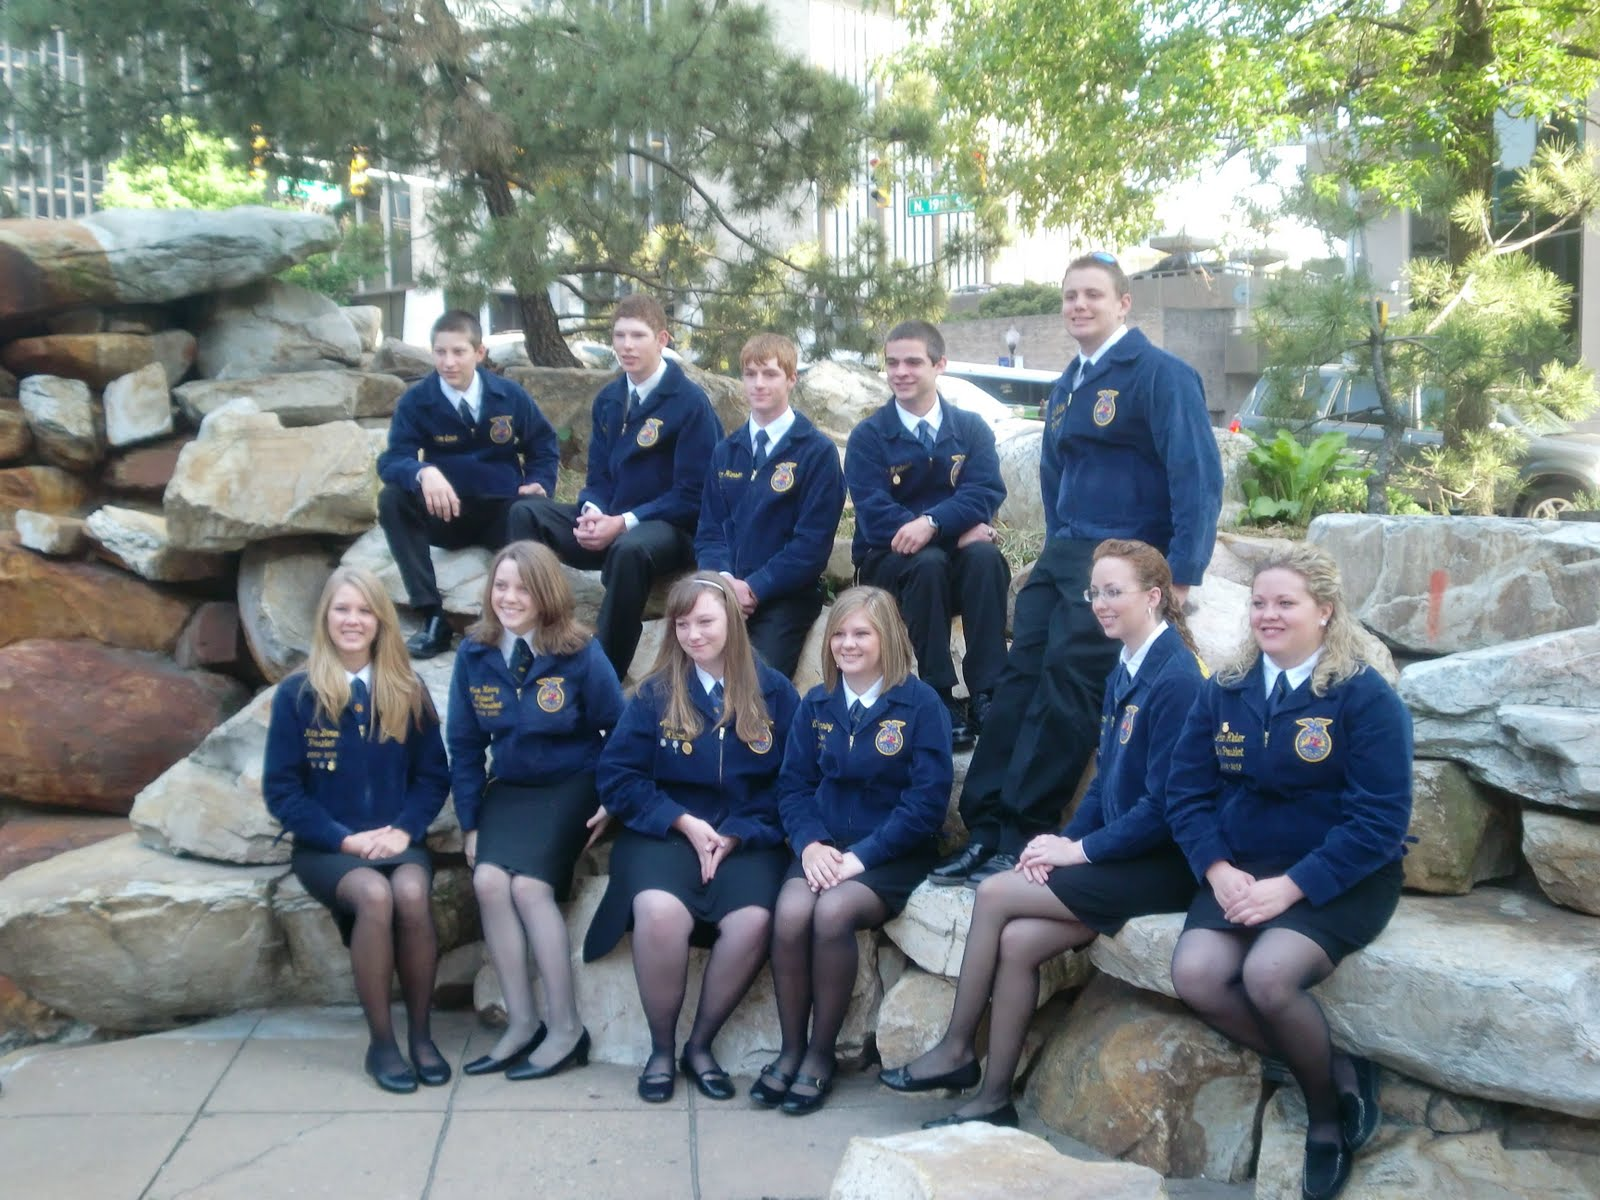 national ffa organization national officers blog the adventures of alex risk management essay contest